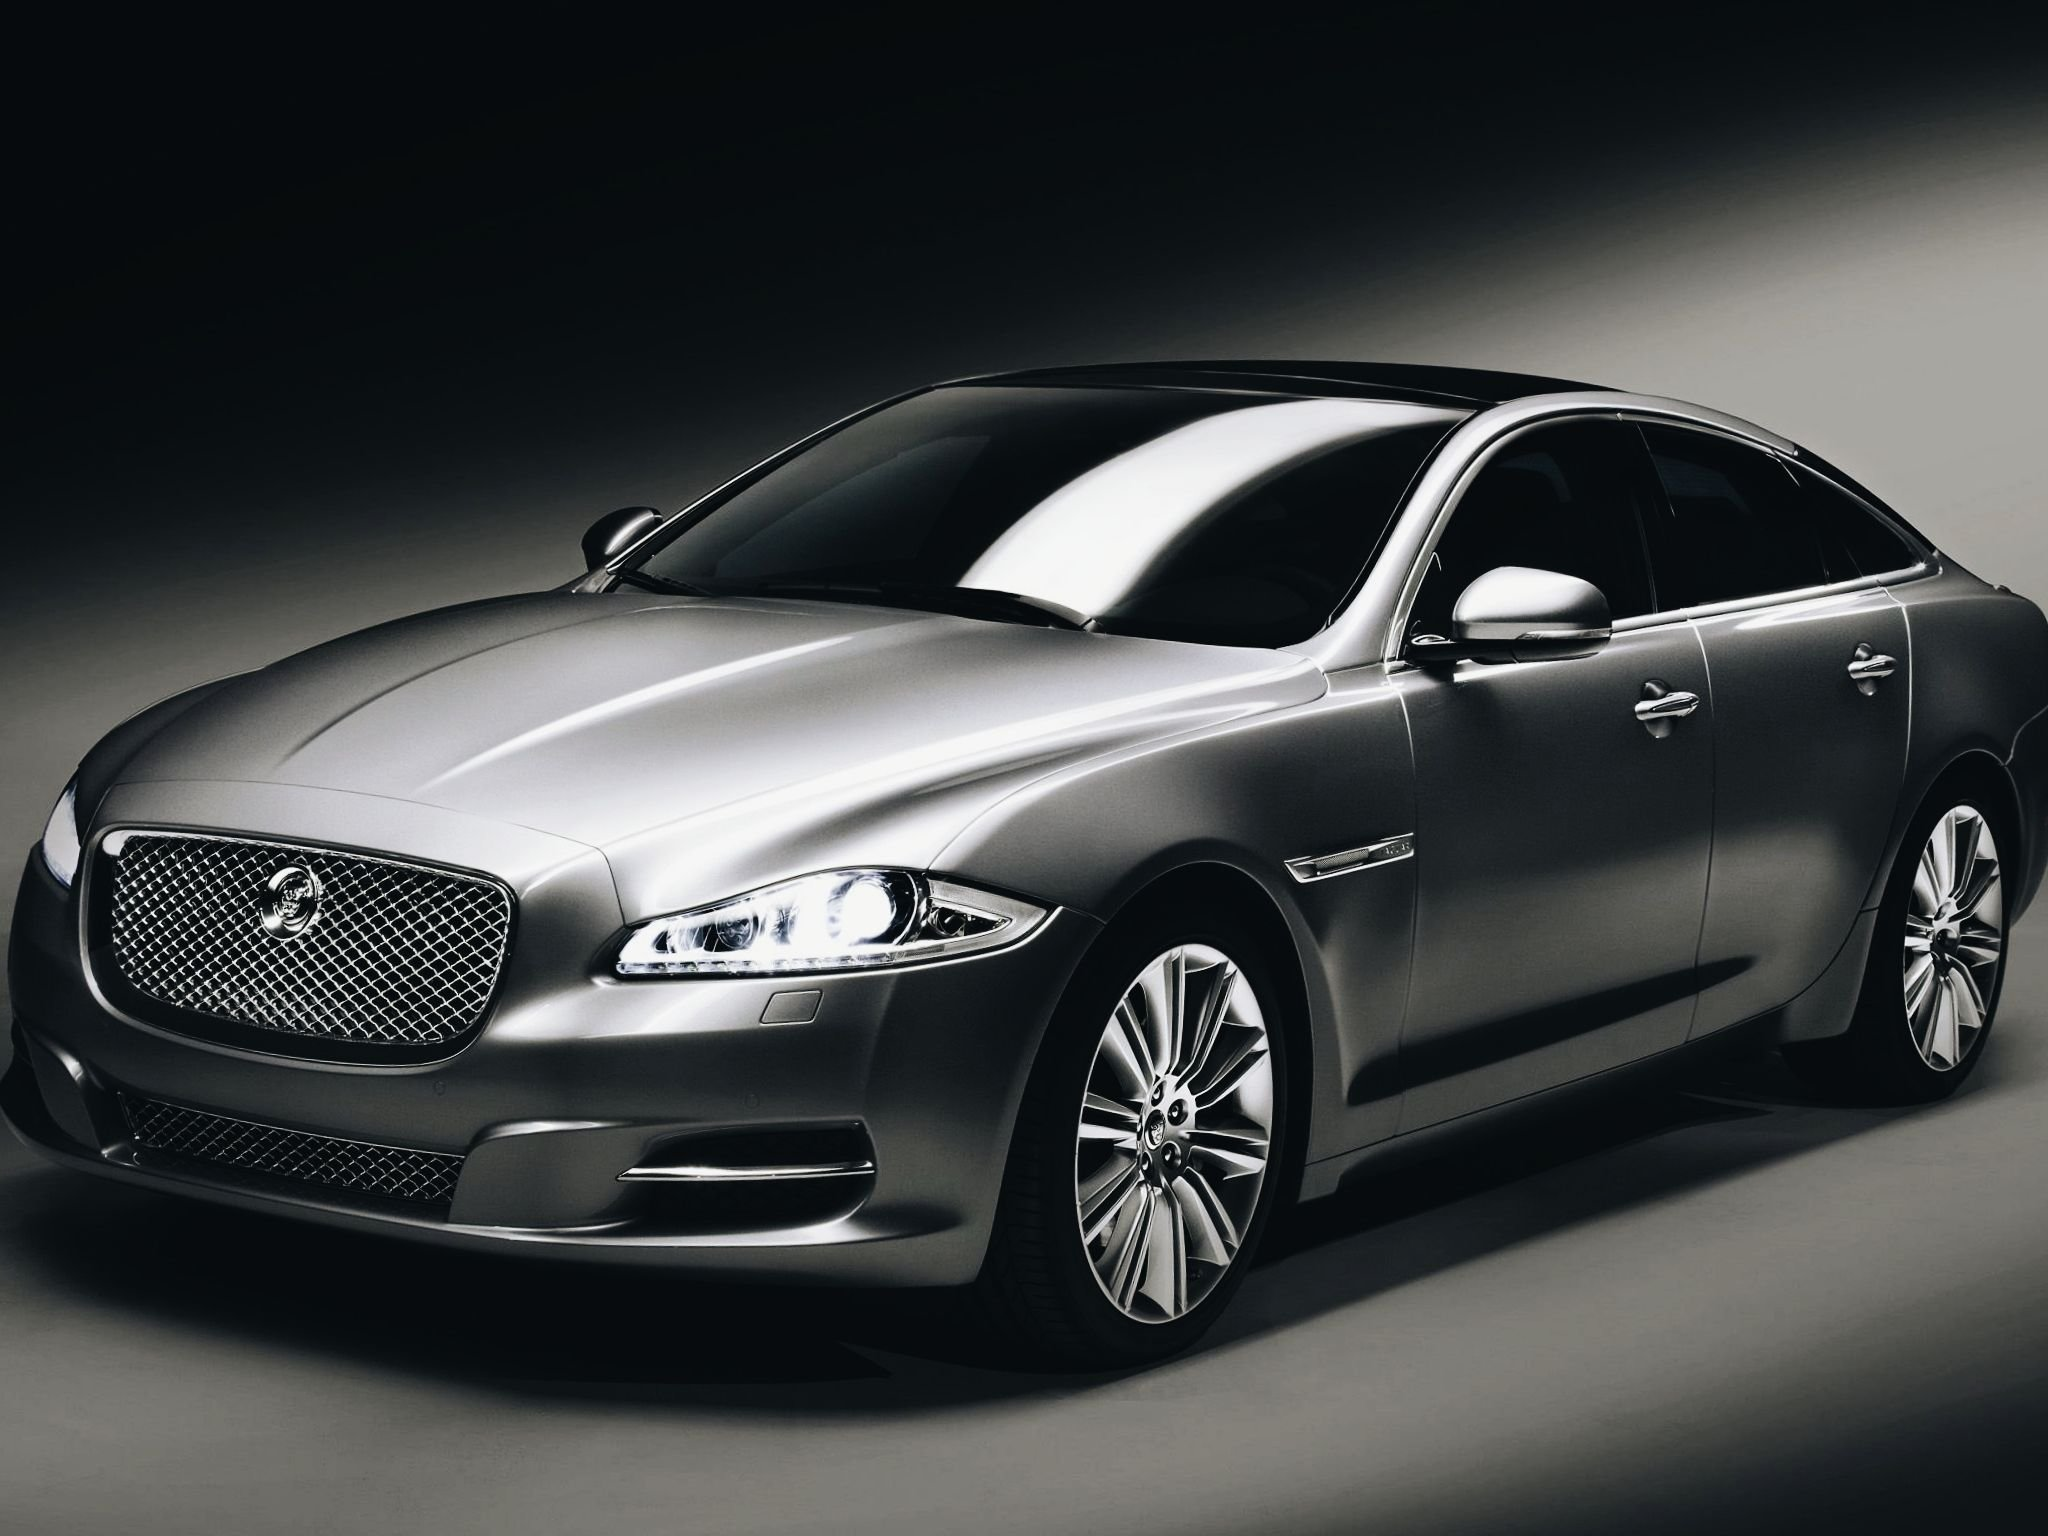 New Pin By Delecia Carter On Whips Jaguar Xj Jaguar Suv On This Month